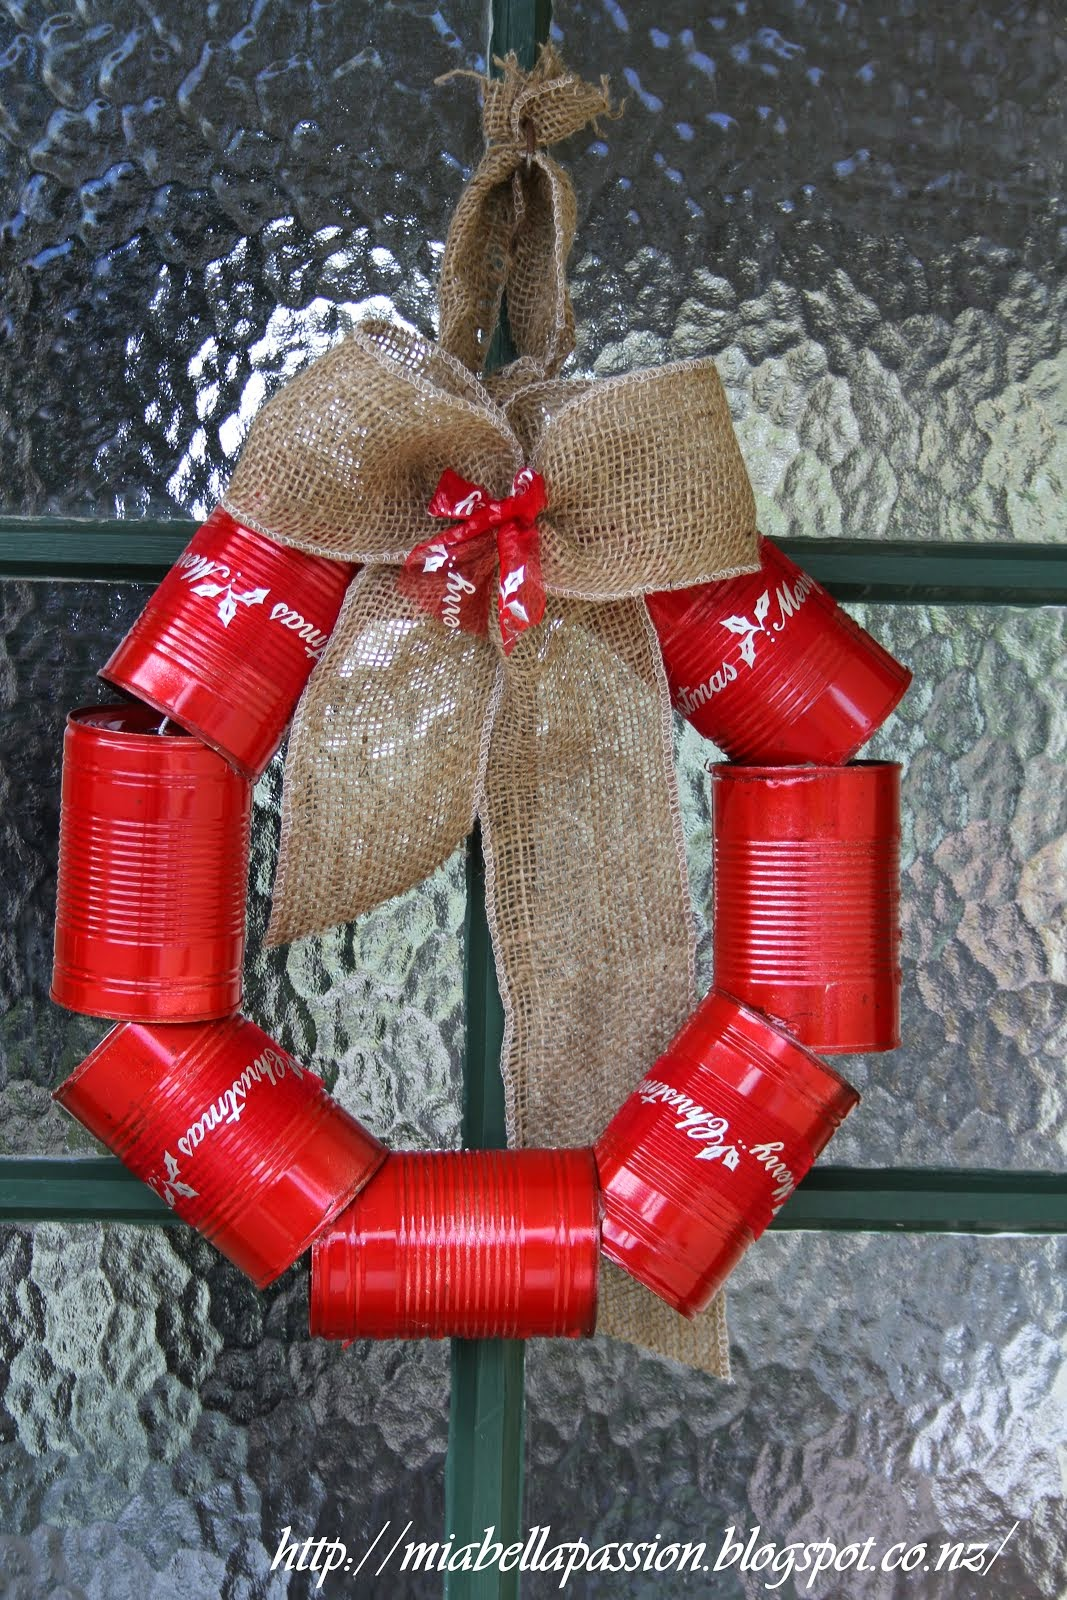 The Tin Can WREATH (disaster):